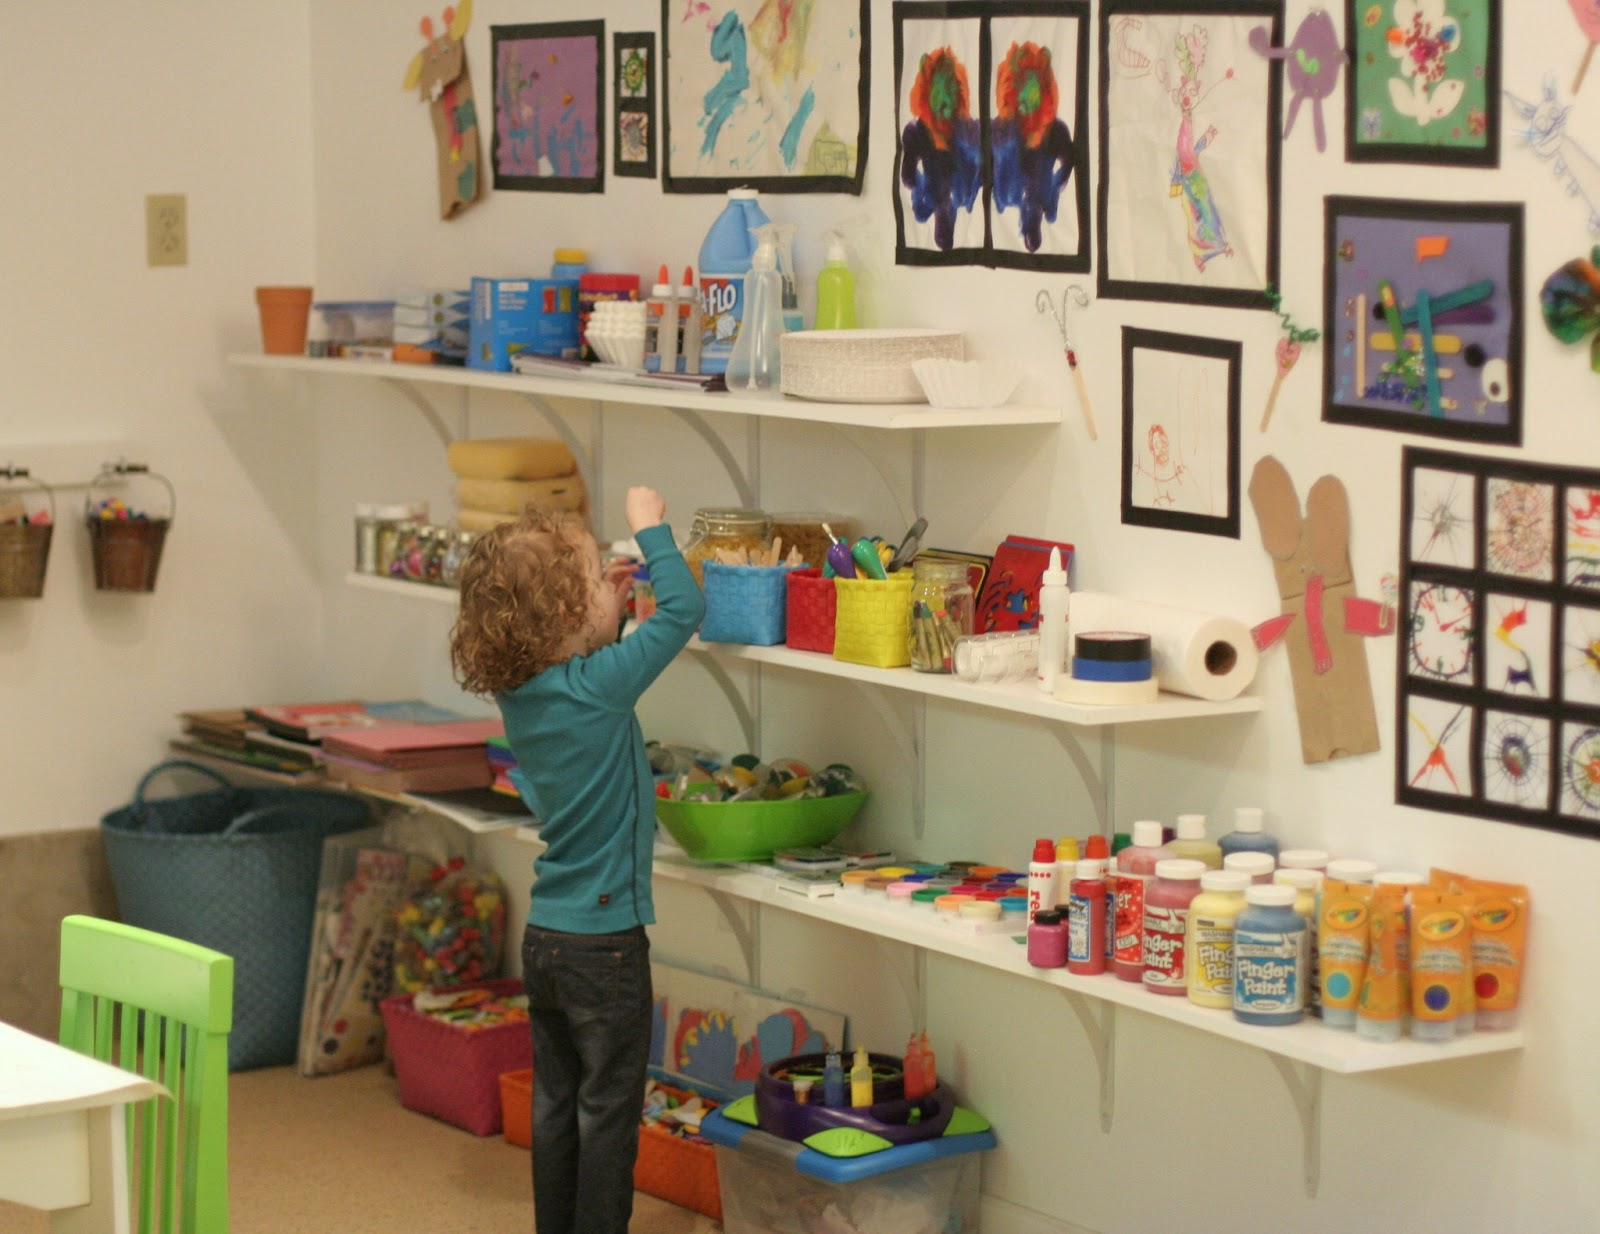 Playroom Design: Our Art Room from Fun at Home with Kids